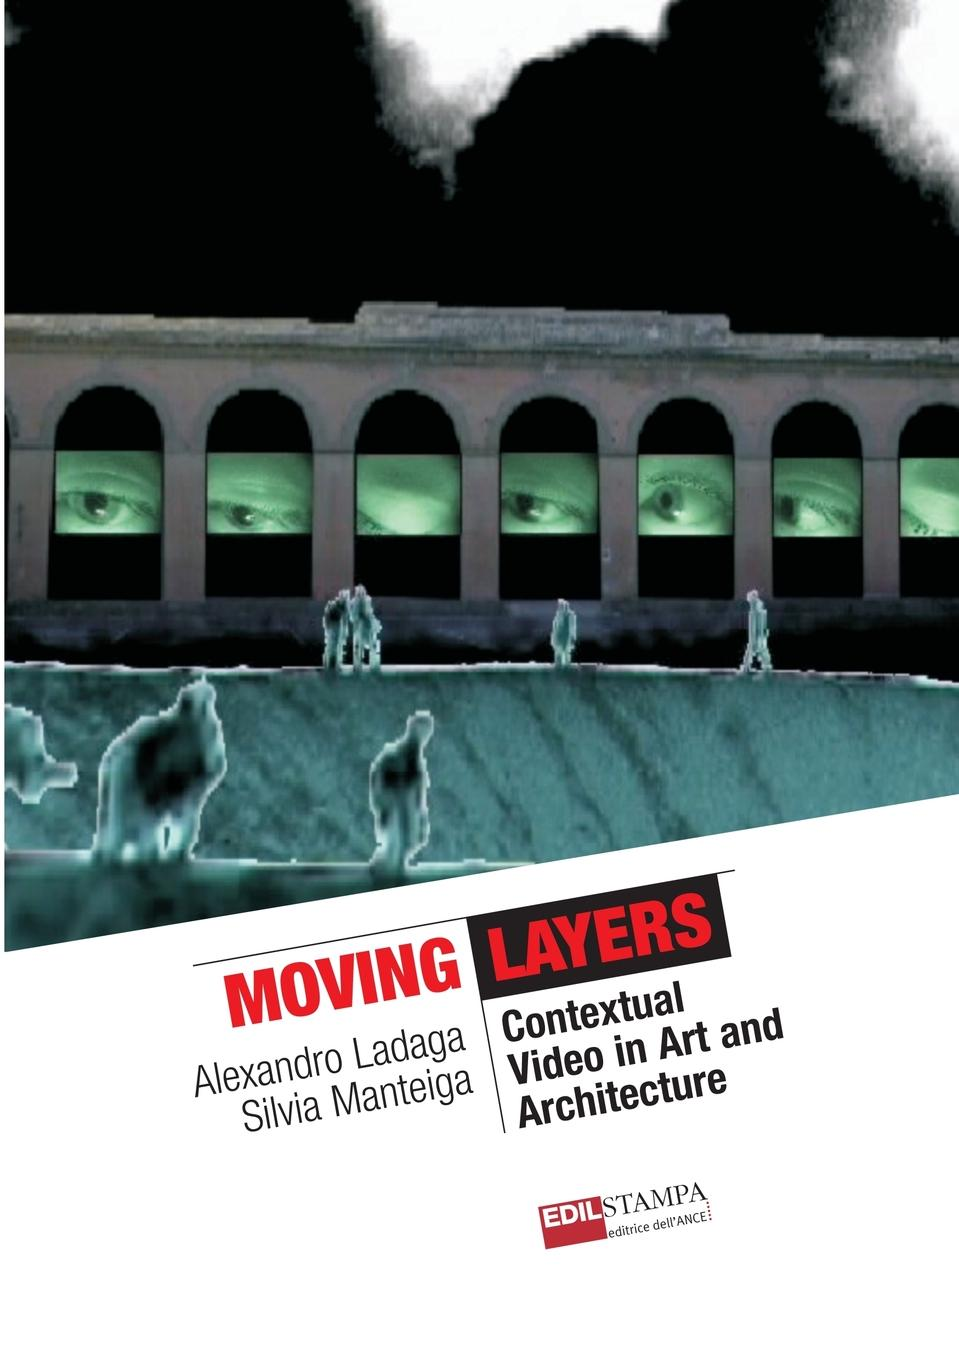 Alexandro Ladaga, Silvia Manteiga Moving Layers Contextual Video in Art and Architecture (B.w) james eckler f language of space and form generative terms for architecture